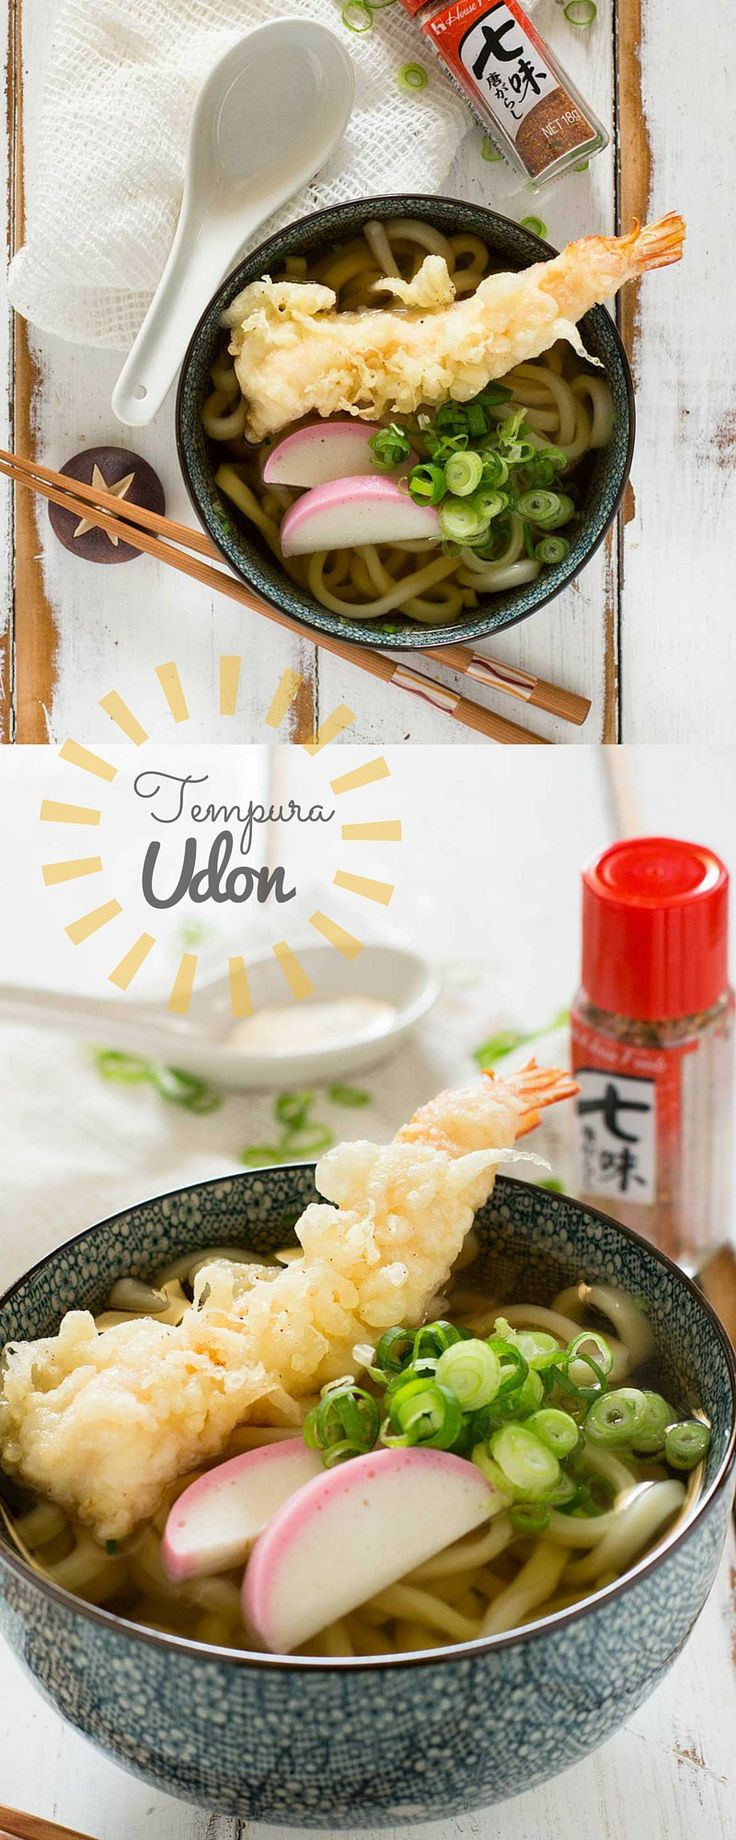 Tempura Udon: Udon is another popular Japanese noodle dish, like Ramen, that has become popular around the world. There are many different variations on udon toppings but this week I am sharing the tempura prawn version, which is one of the most popular and my personal favourite. Udon noodles are so tasty and the soup has such a delicious light flavour that I'm sure you will love!